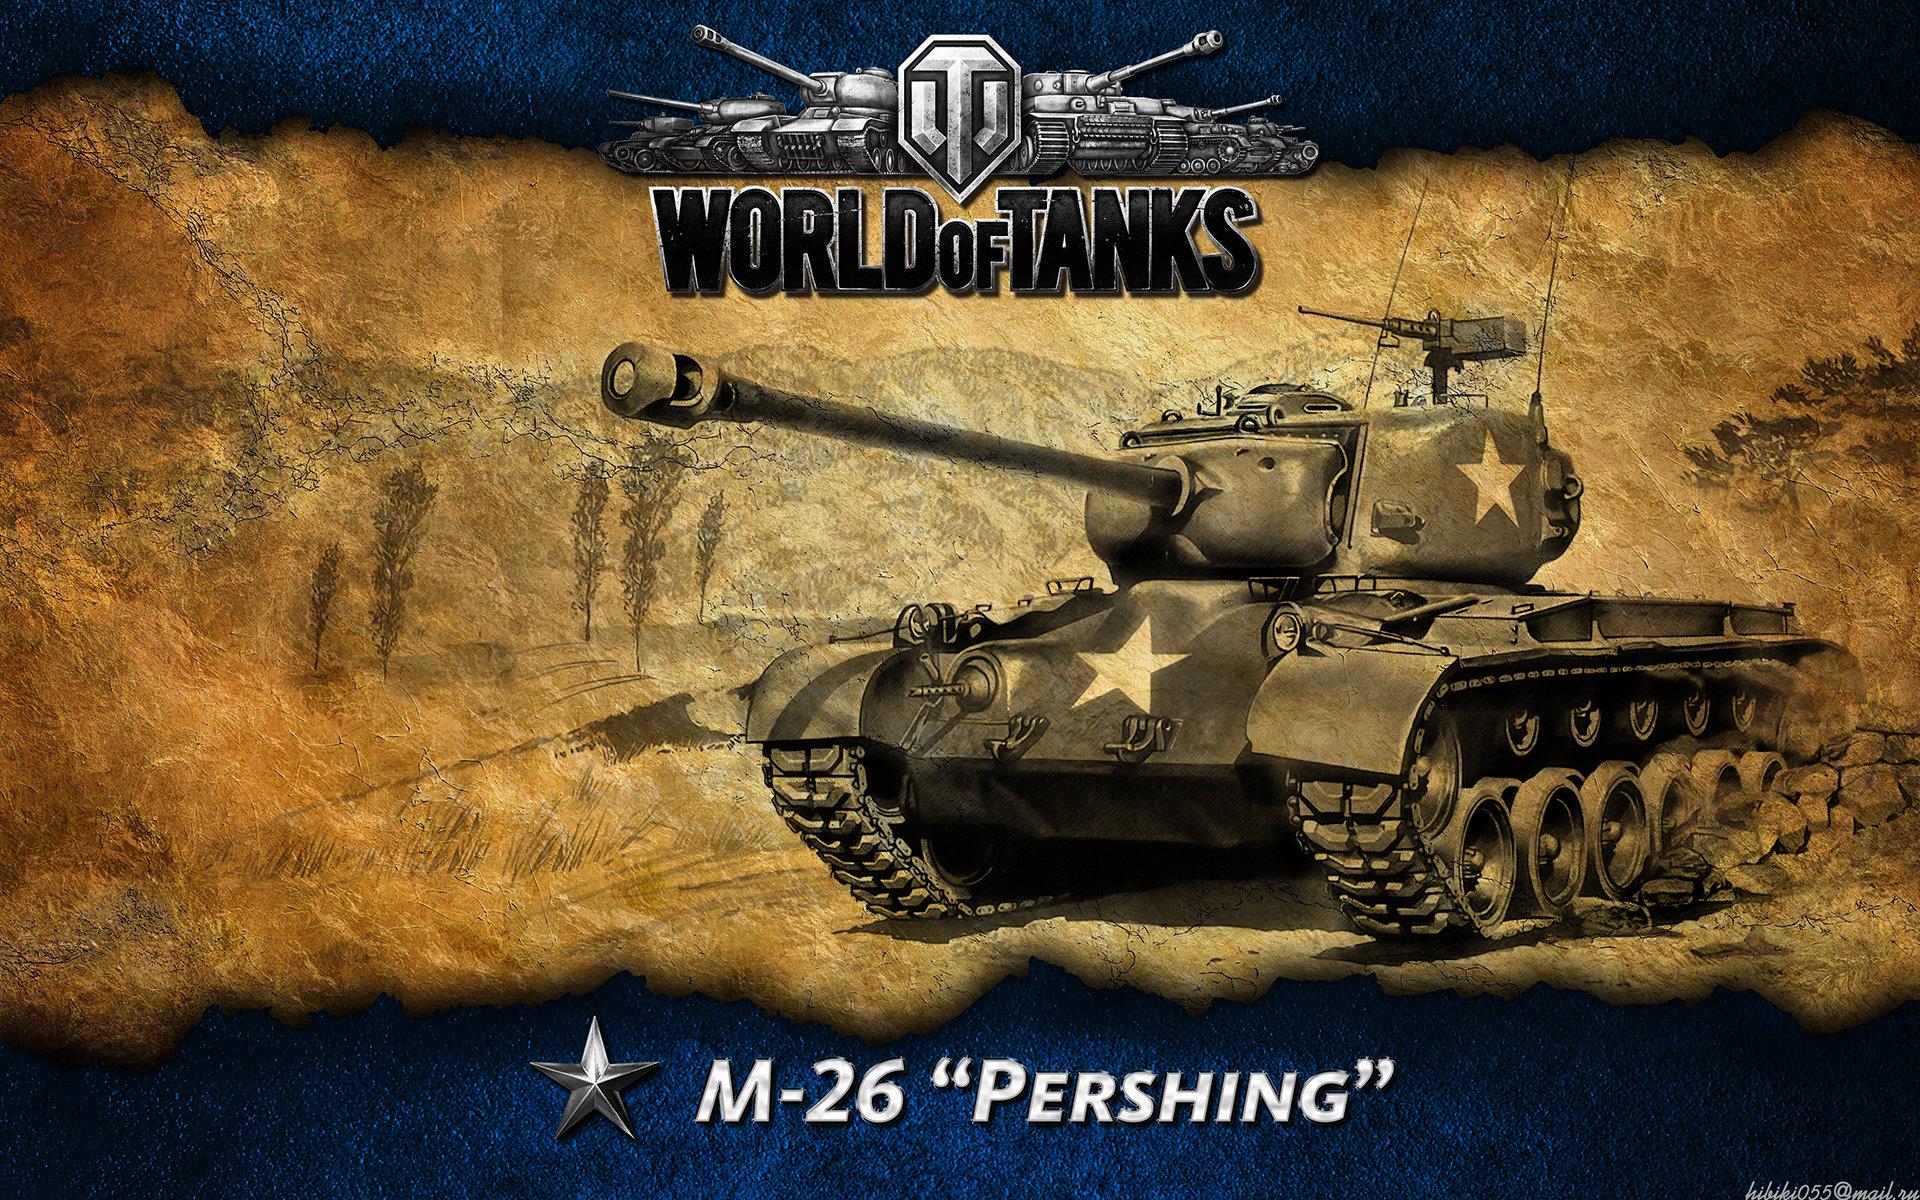 Awesome World Of Tanks (WOT) free wallpaper ID:45185 for hd 1920x1200 PC